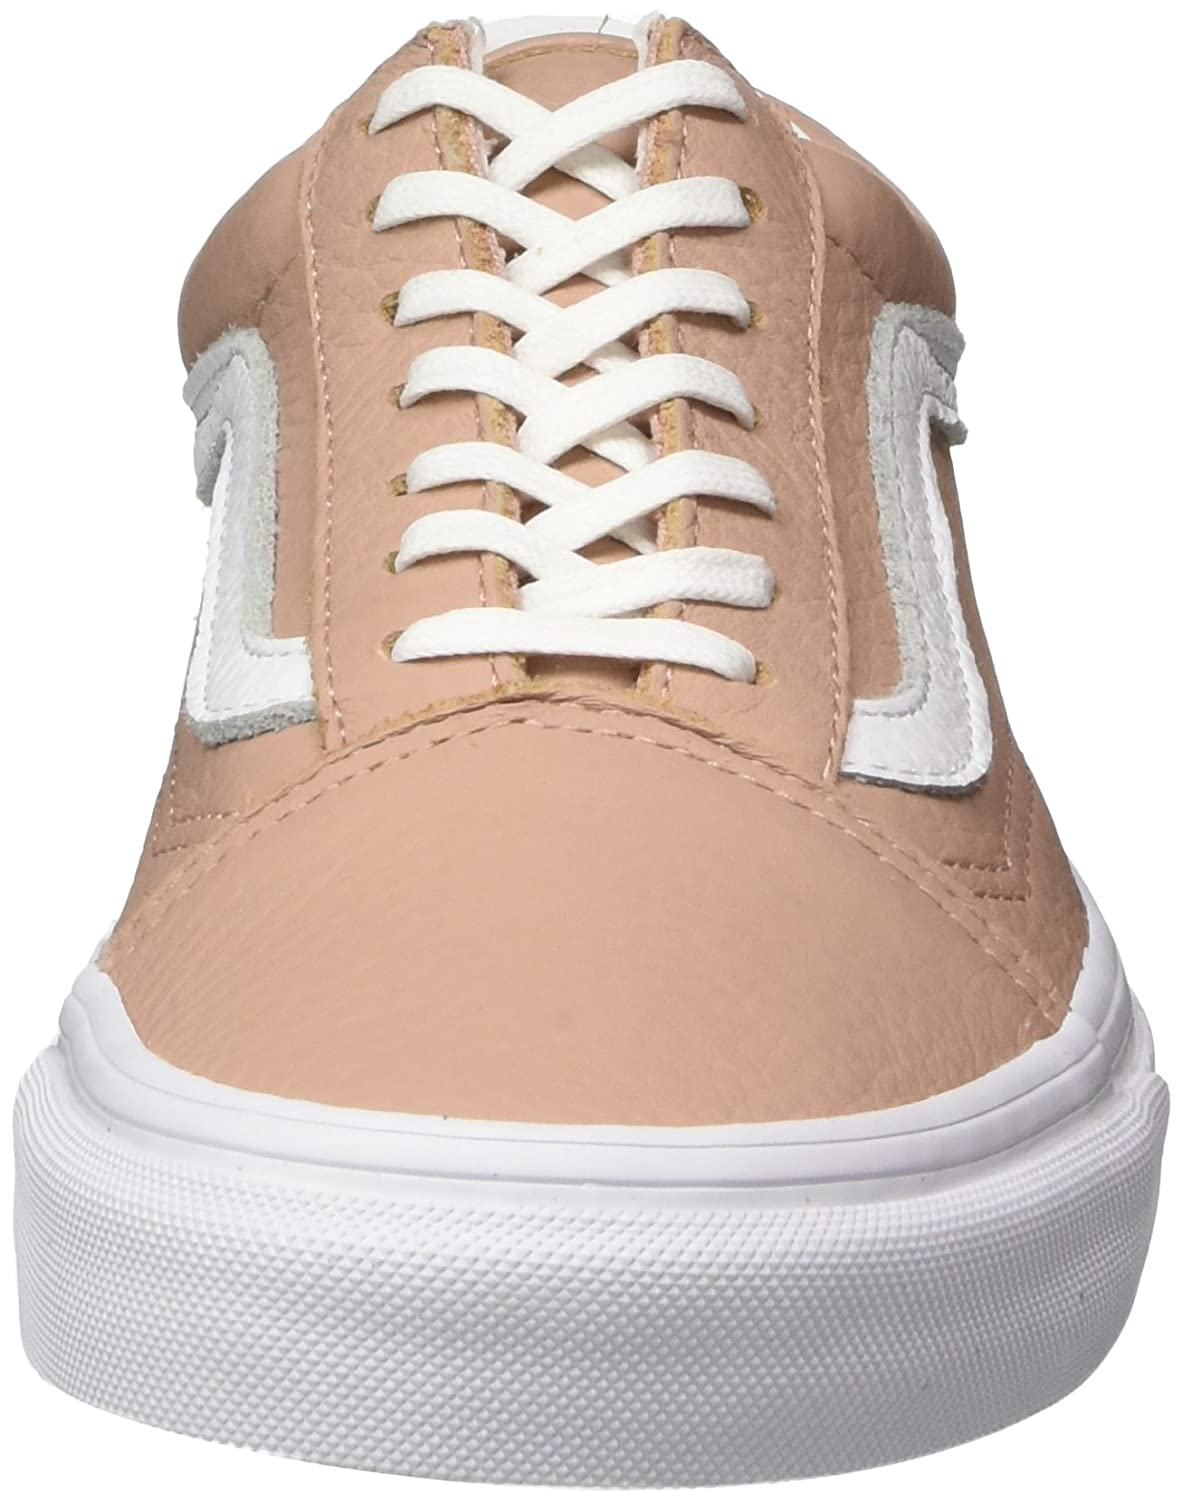 cf5fe2ce1cee4e Vans Women s Old Skool Leather Trainers  Amazon.co.uk  Shoes   Bags